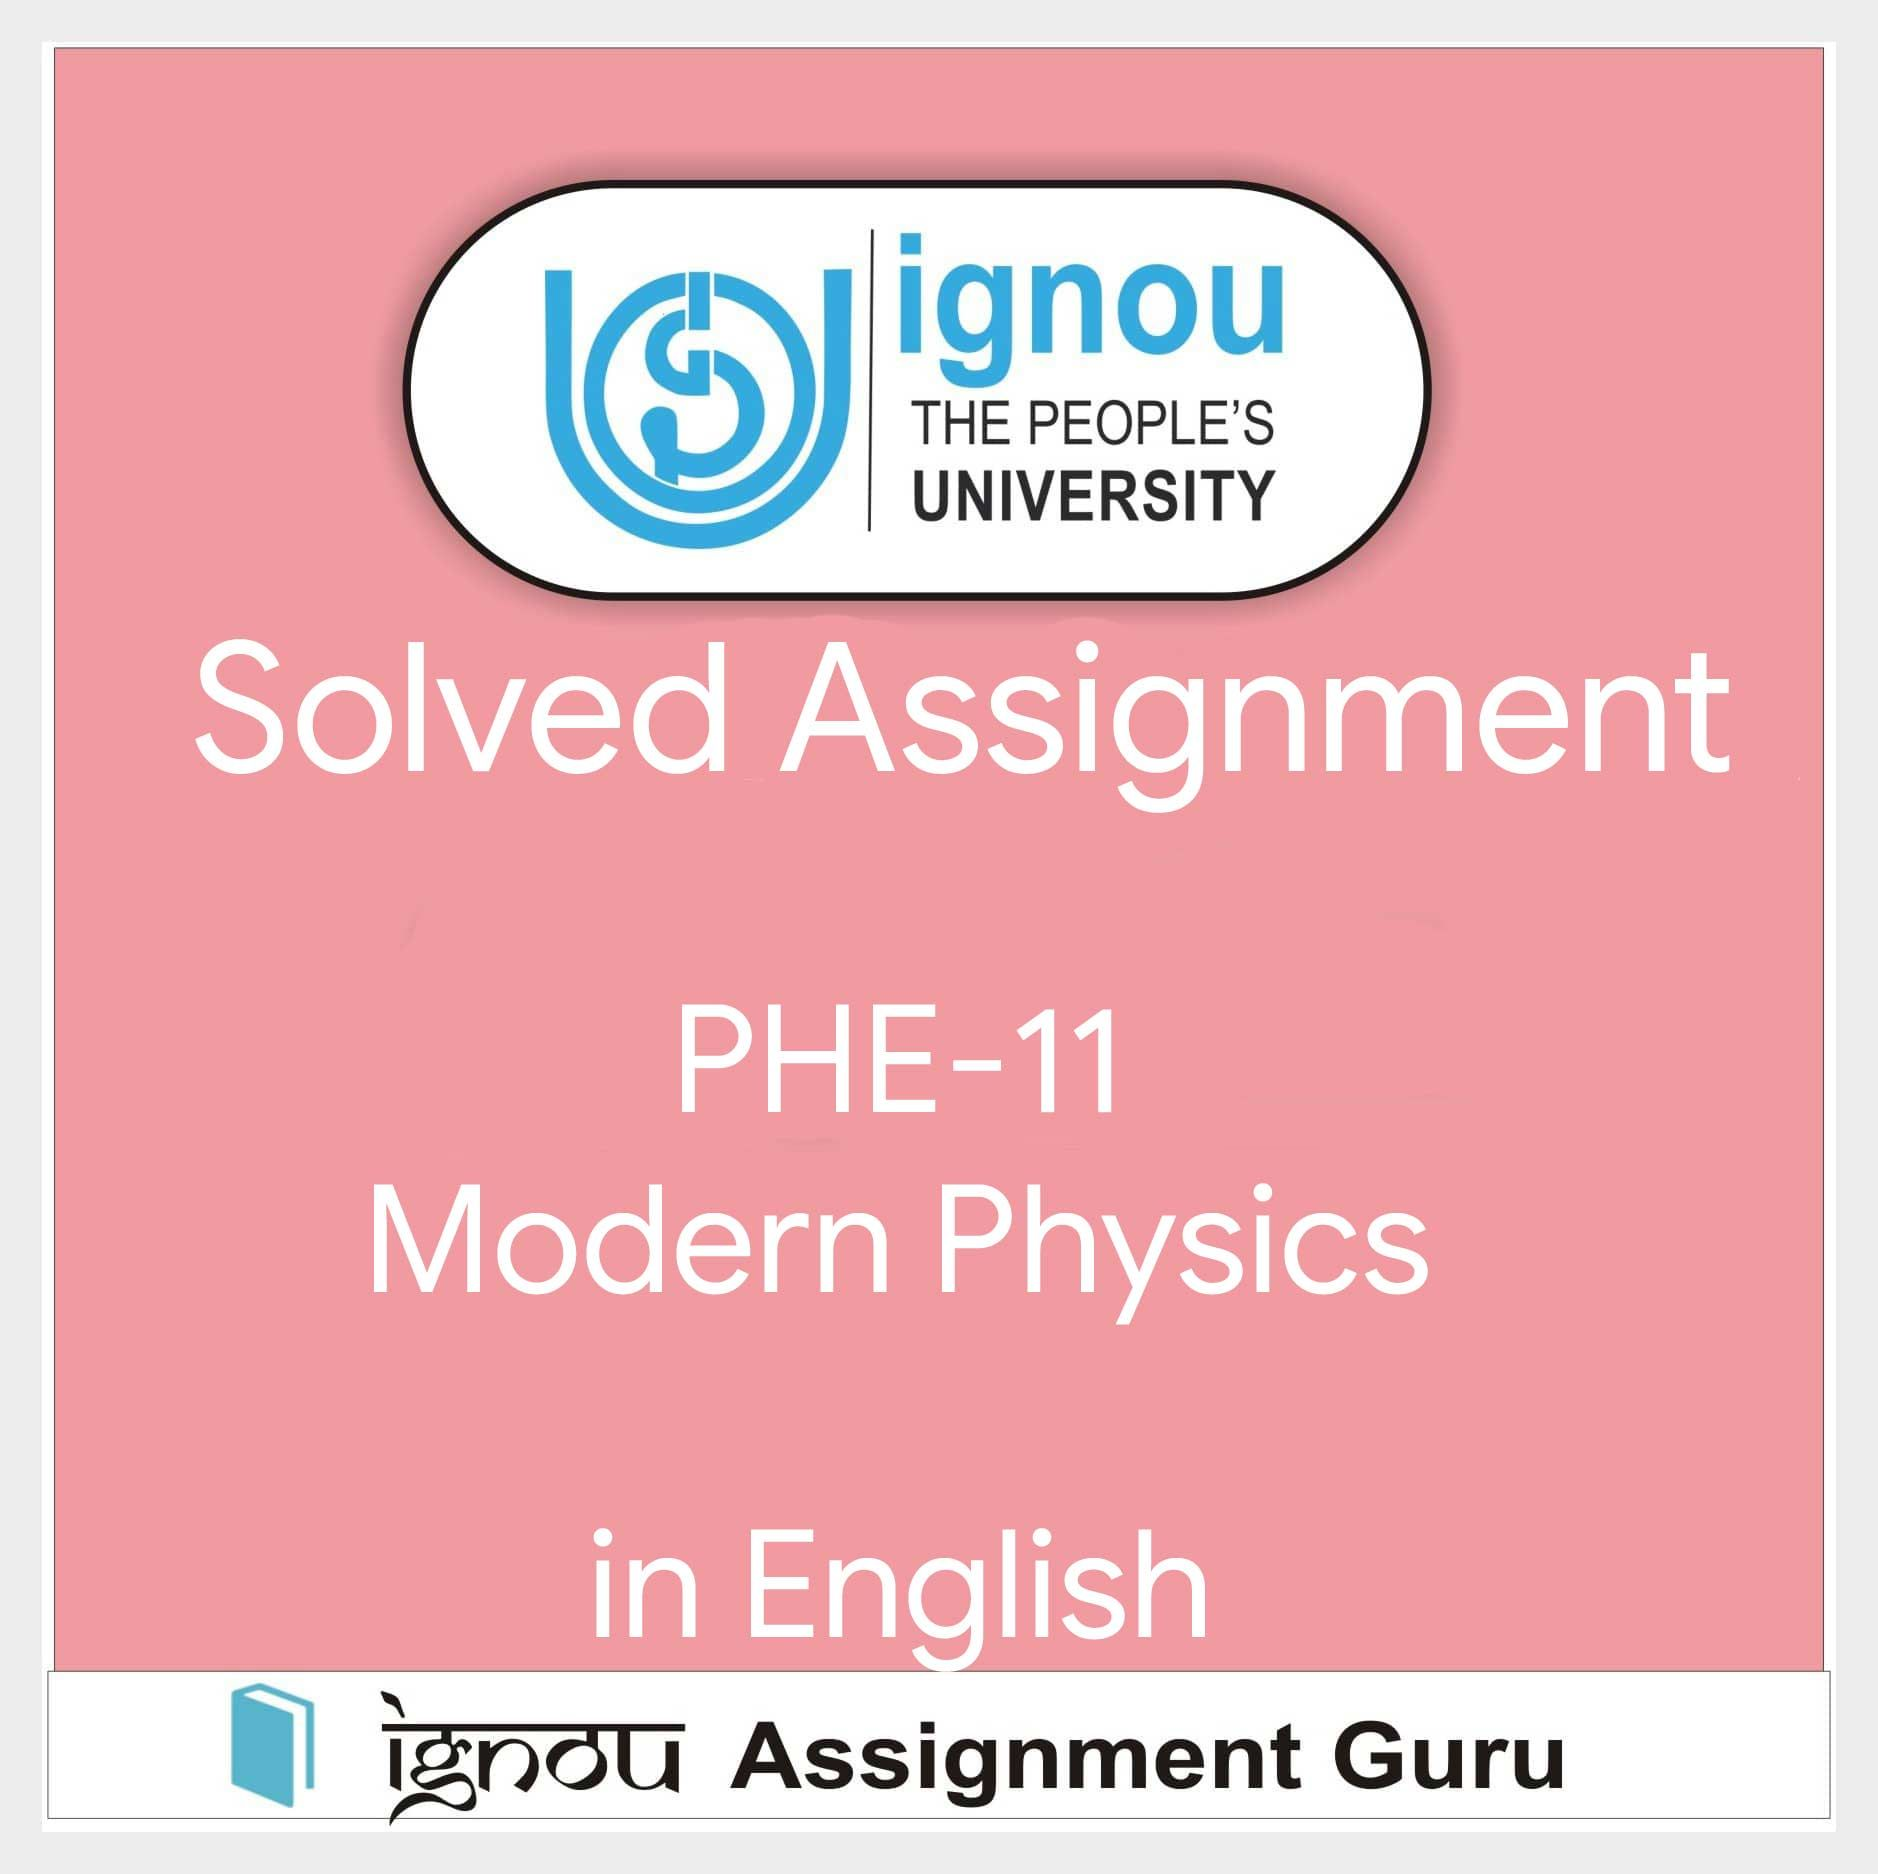 Phe 11 Modern Physics In English Solved Assignment 2019 Modern